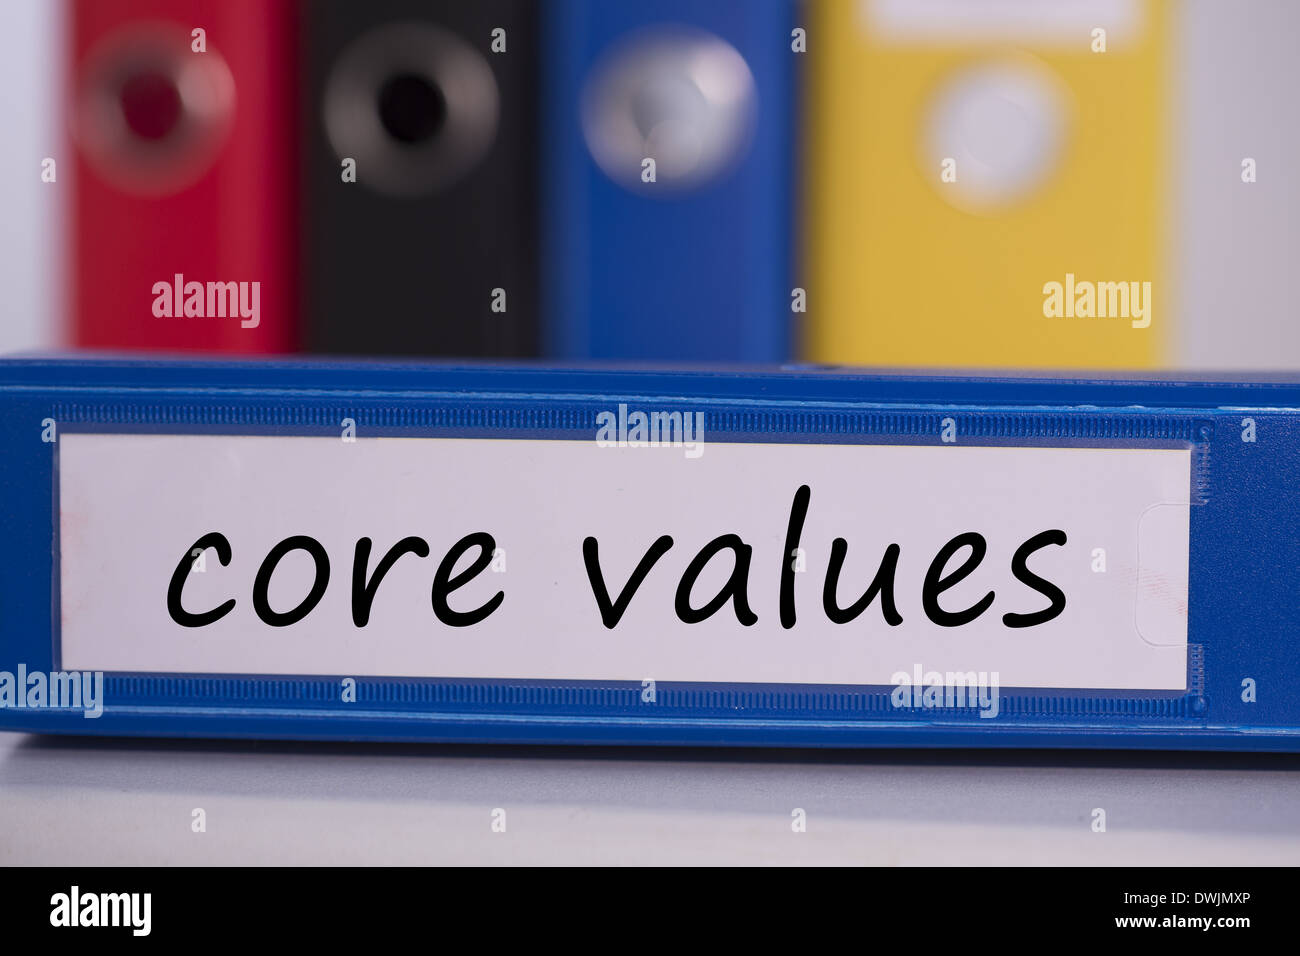 Core values on blue business binder - Stock Image